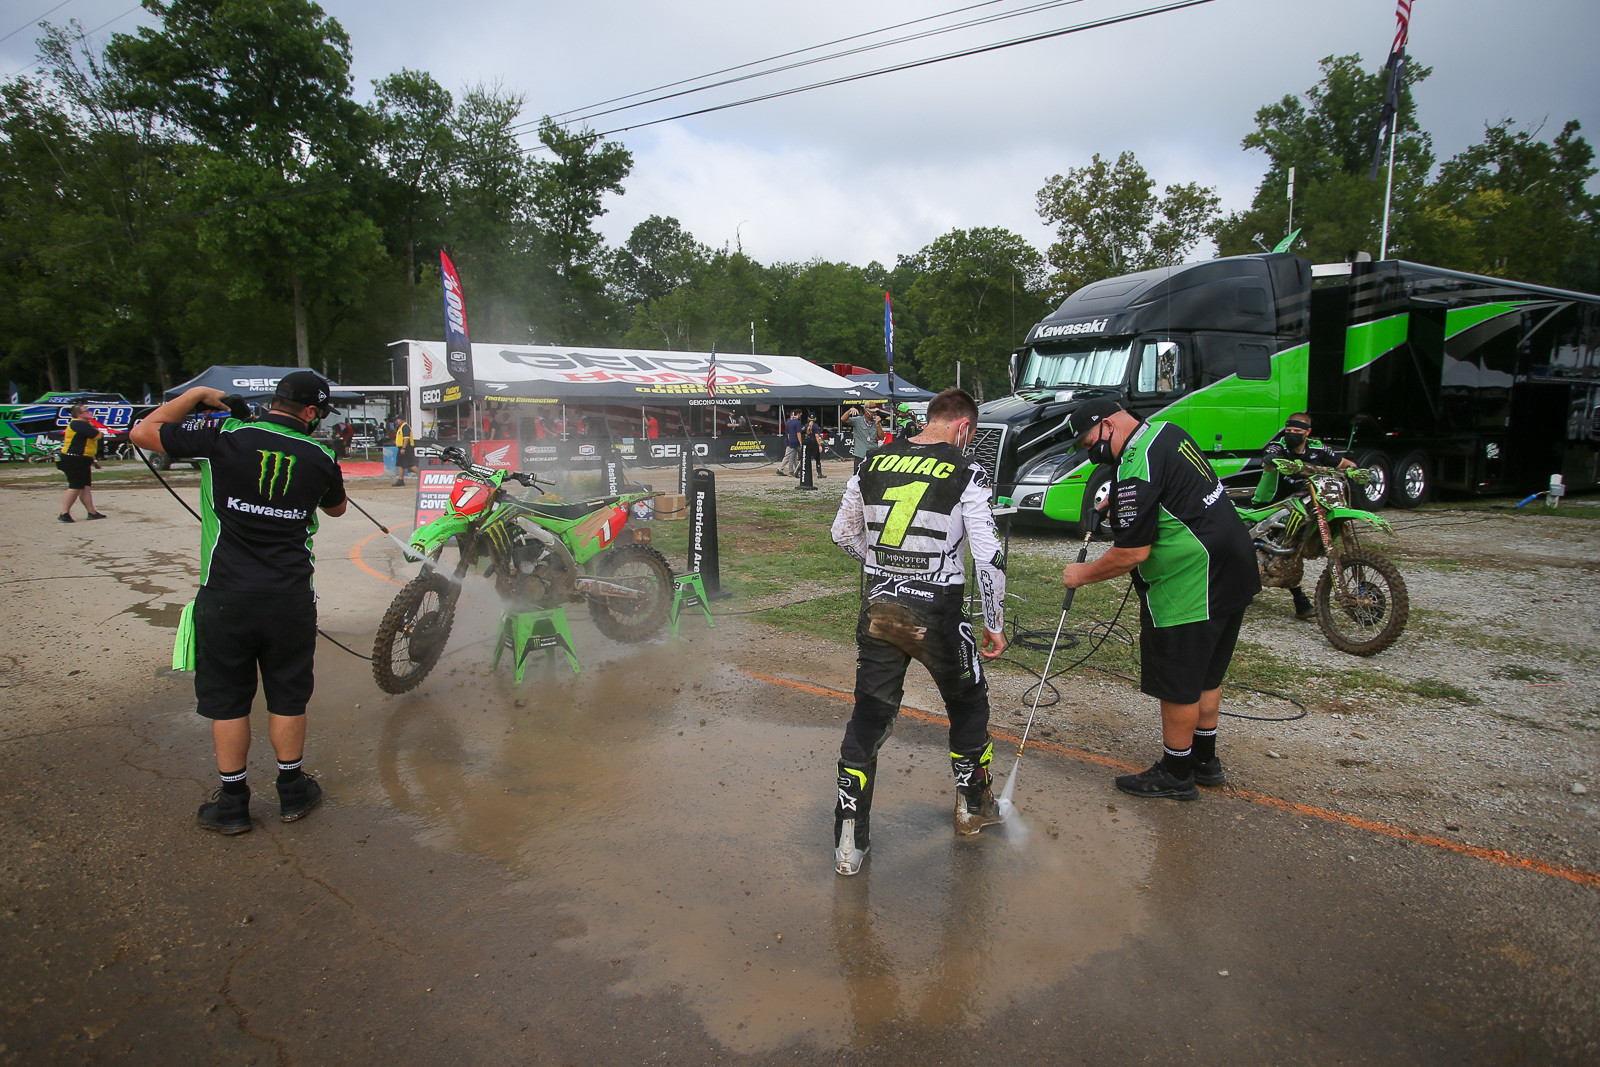 With no fans in the pits, you got scenes like this, with Eli Tomac well-removed from the confines of the Monster Energy Kawasaki footprint. He lost some time in one of the practice sessions when his bike got stuck in a really deep rut.